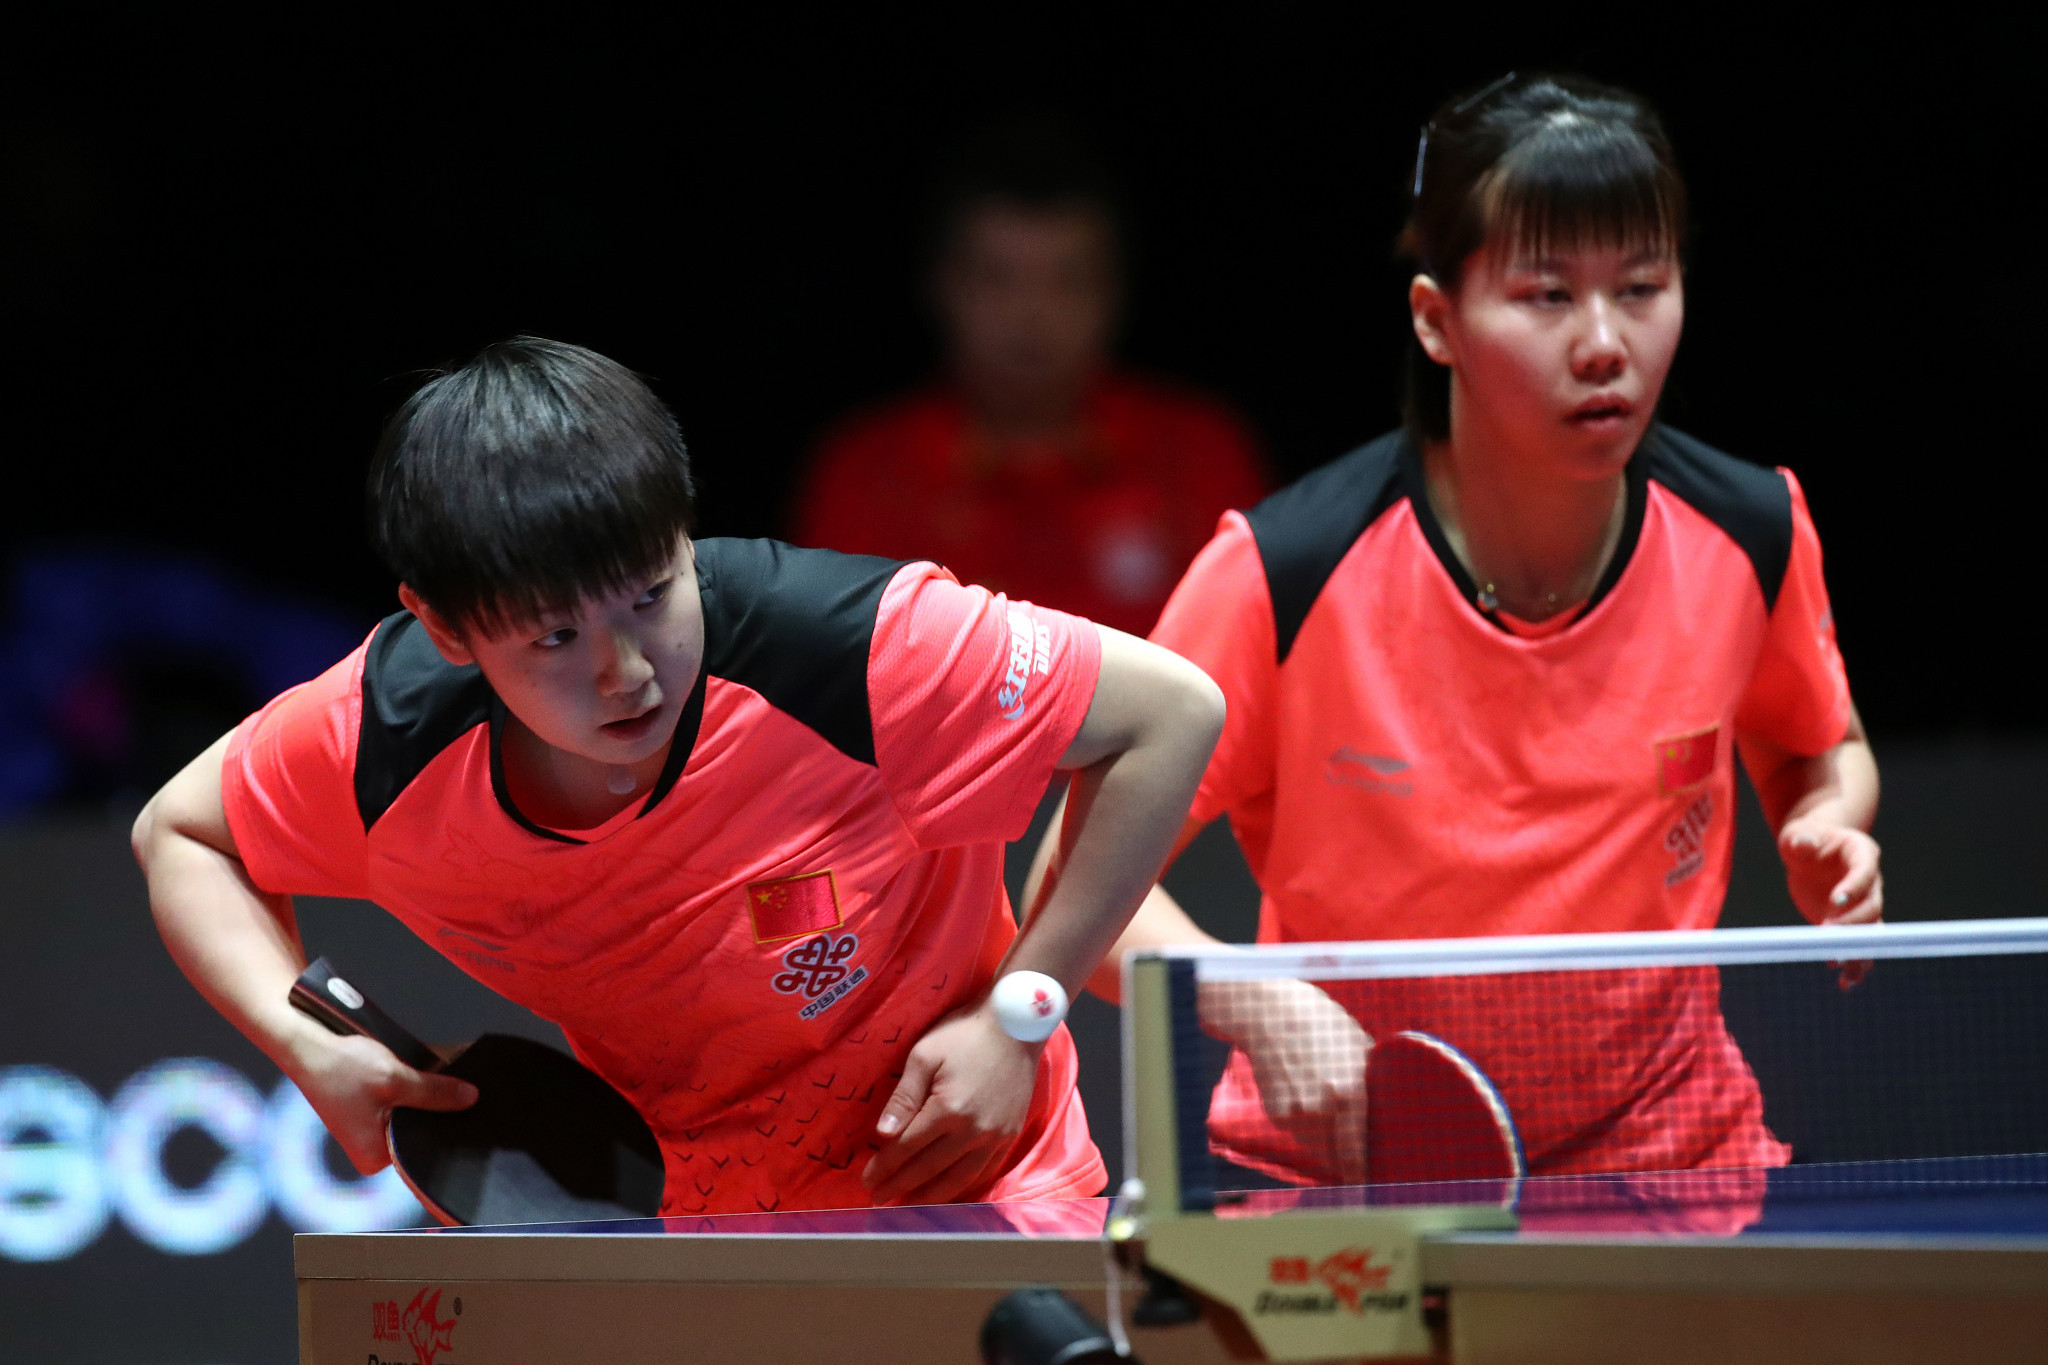 The ITTF Executive Committee met during the World Tour Grand Finals in Incheon ©ITTF